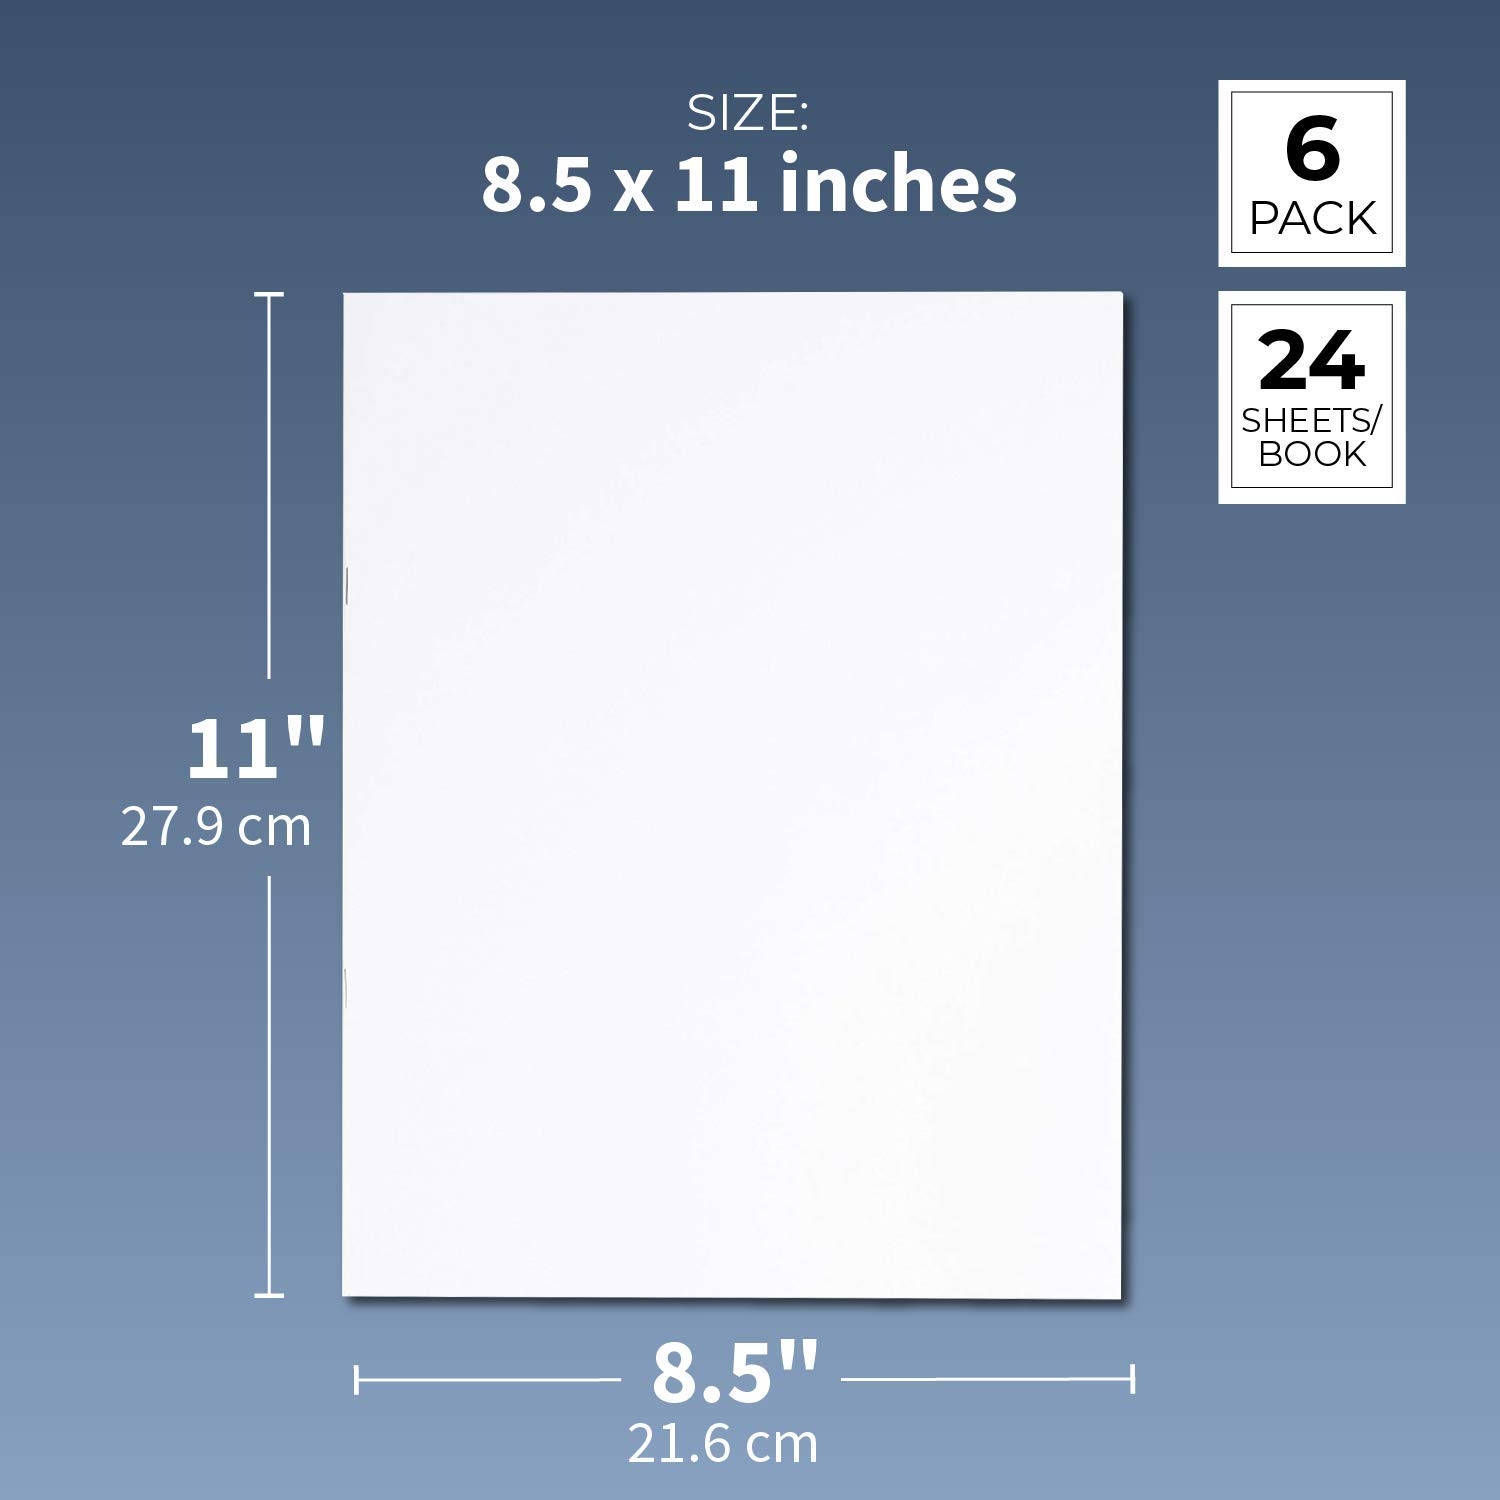 24-Pack Unlined Books Childrens Writing Books White 4.25 x 5.5 Inches Creative Class Projects Blank Notebook 24 Sheets Each Unruled Plain Travel Journals for Students School